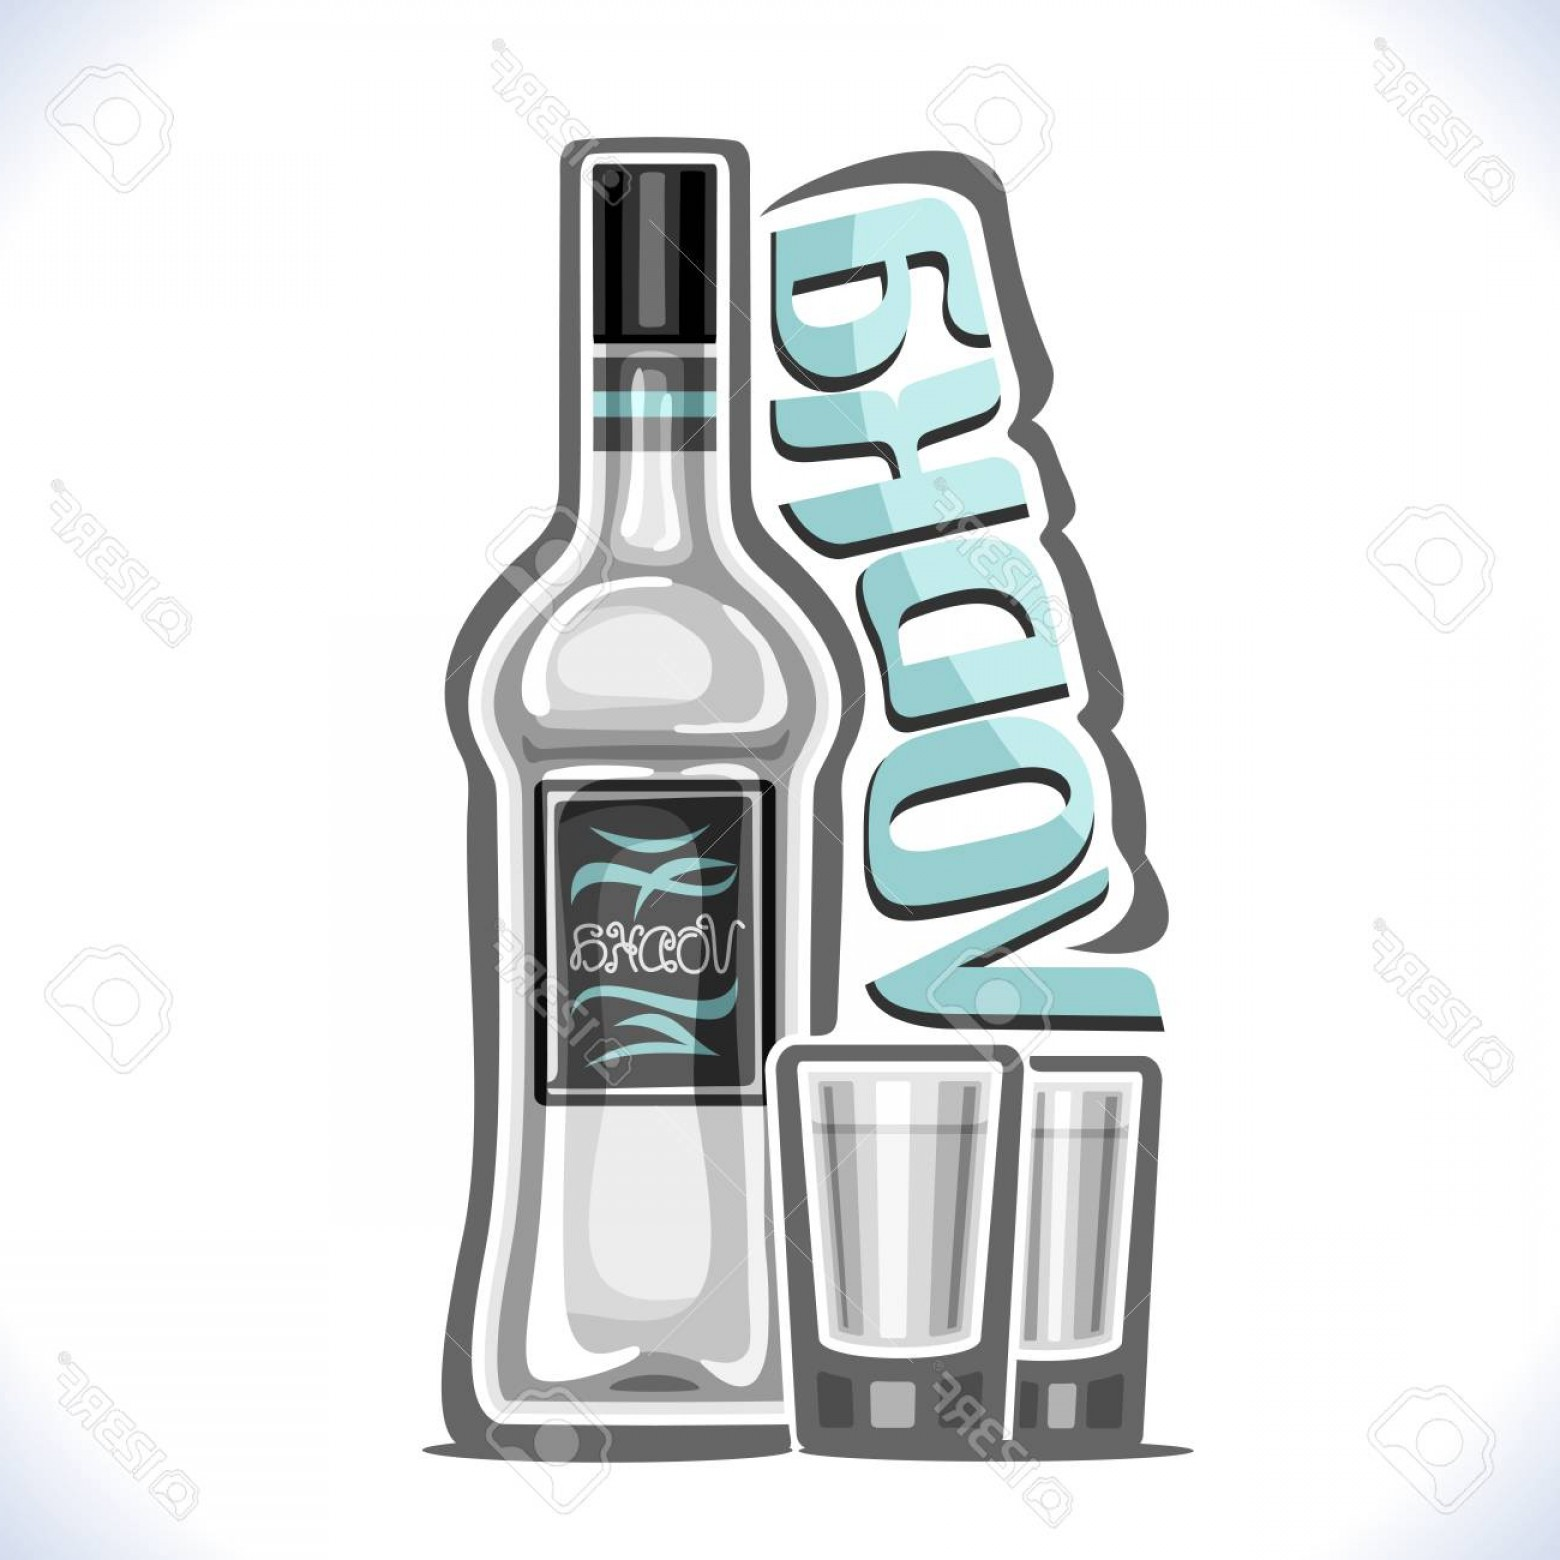 Booze Bottle Vector: Photostock Vector Vector Illustration Of Alcohol Drink Vodka Poster With Transparent Bottle Of Premium Russian Booze A